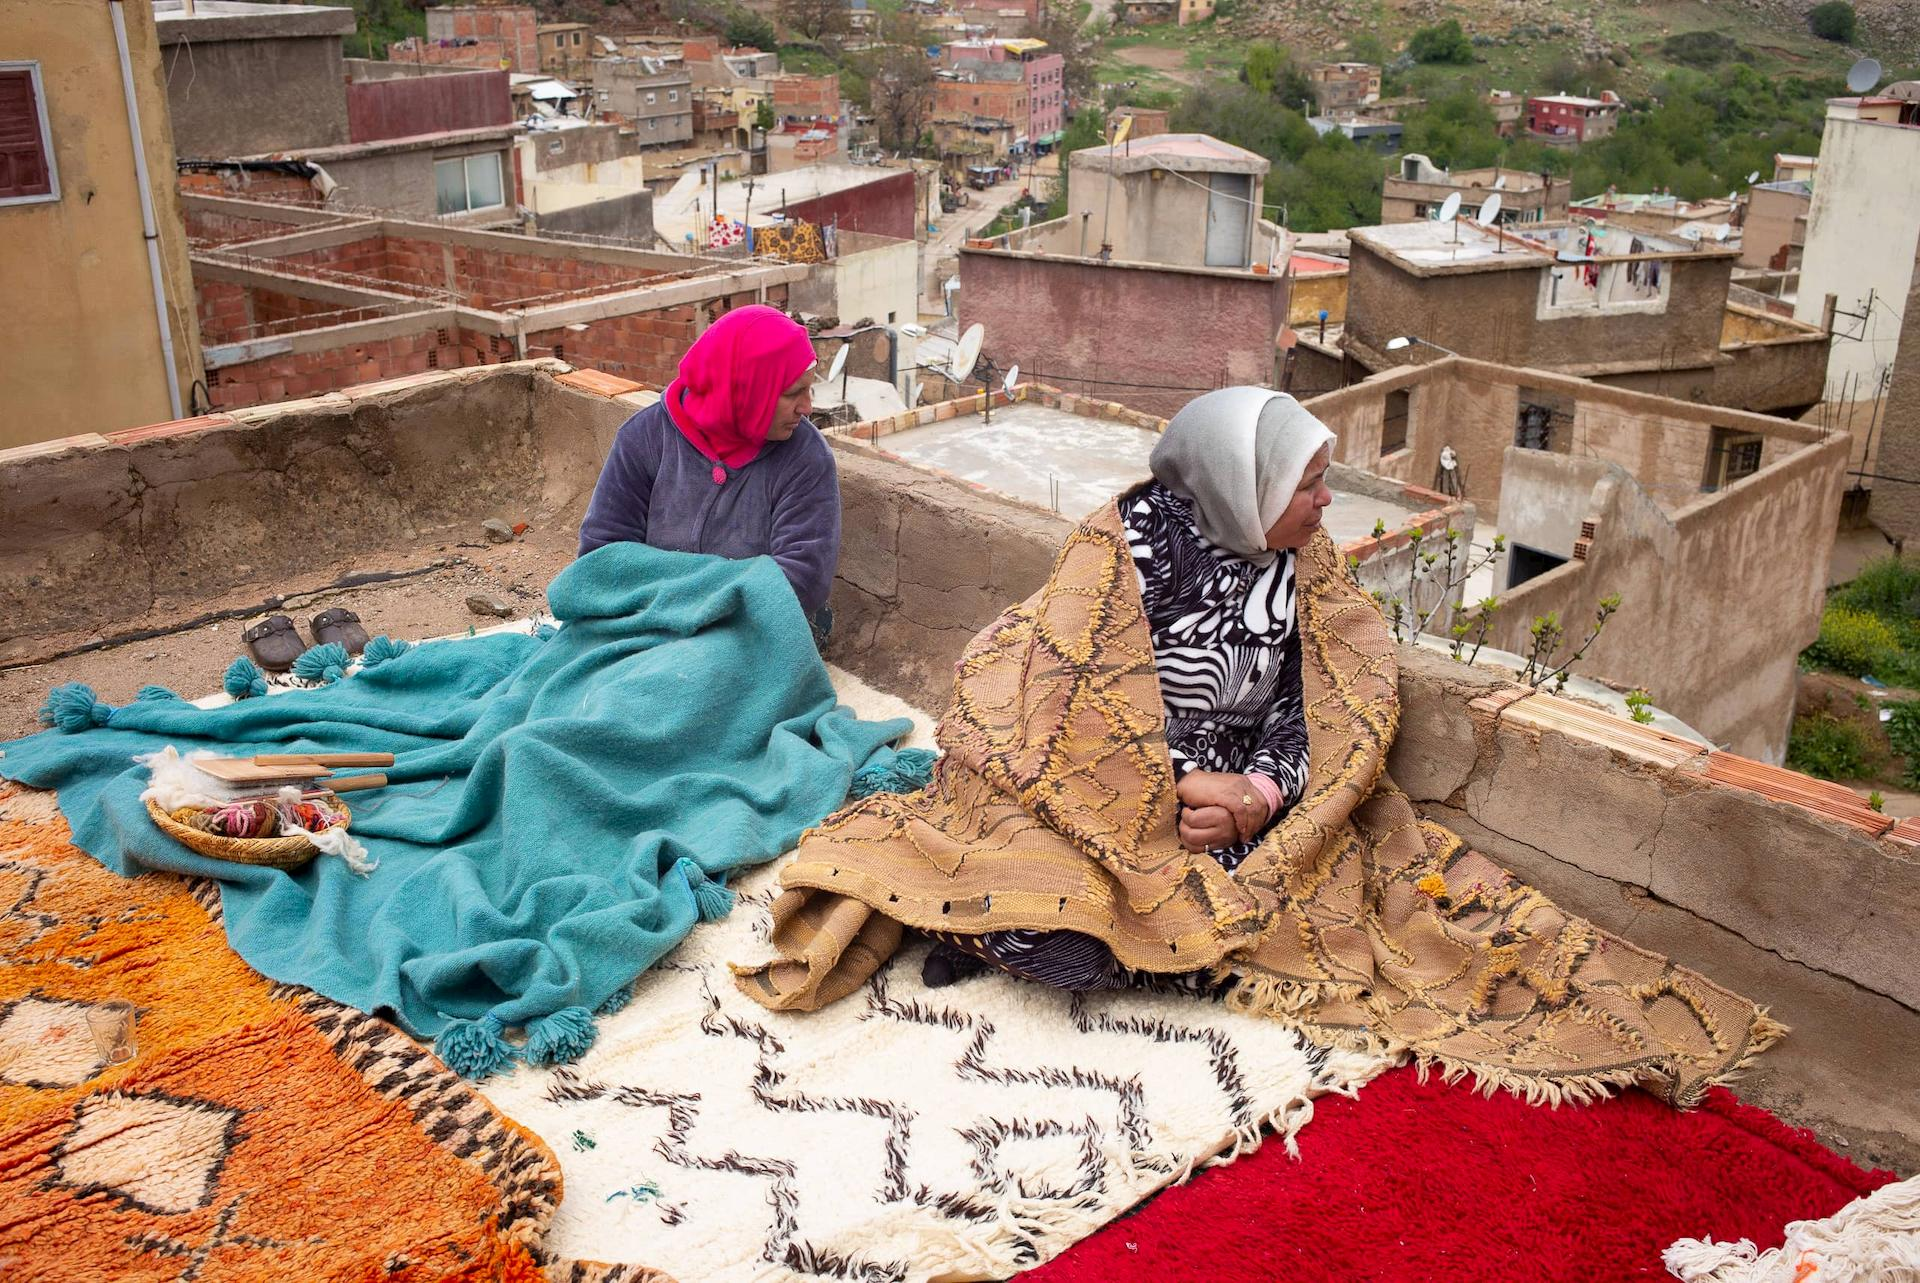 /img/pages/atlas-weavers/1/Weavers_Hashmia_Douiri_and_Hjou_Amraoui_sitting_on_the_rooftop_of_the_cooperative.jpg